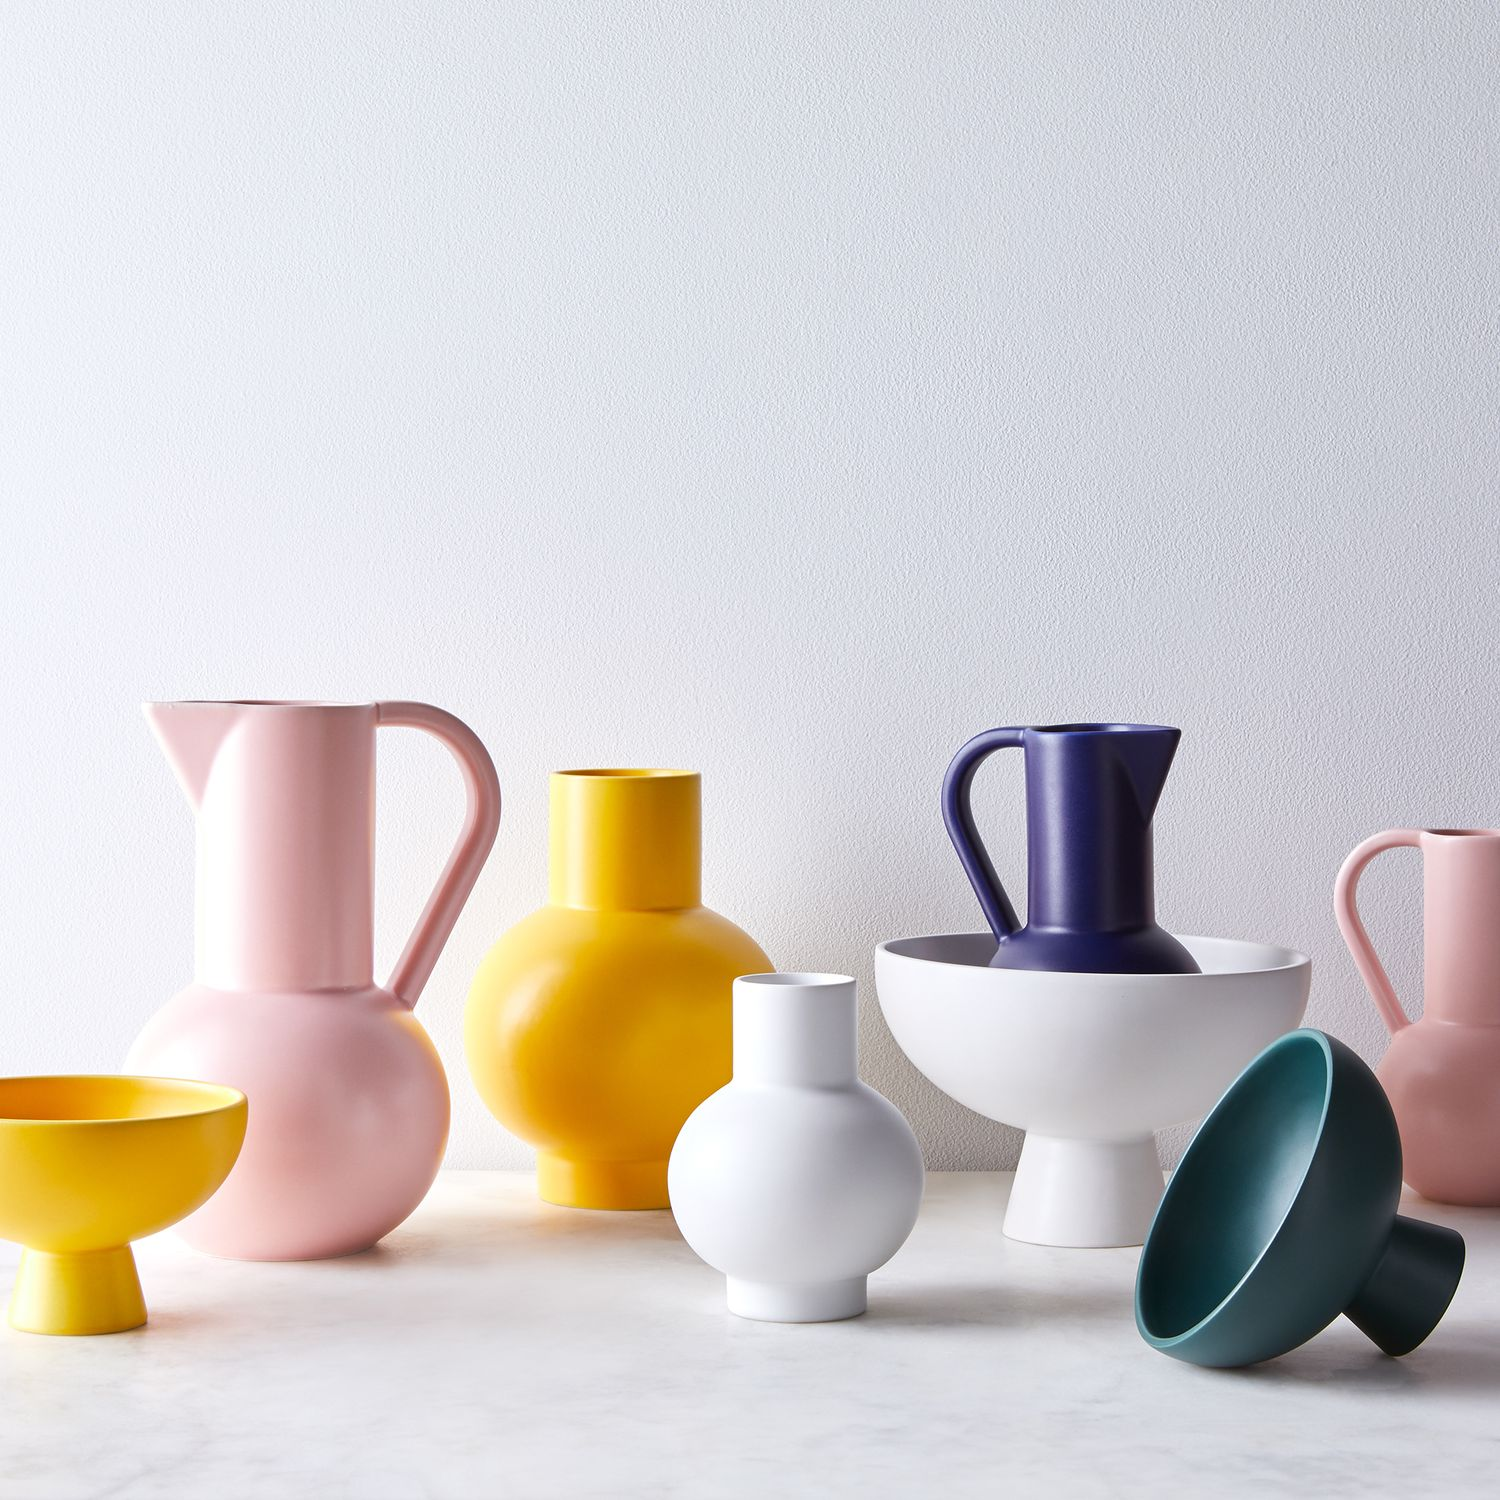 MoMA Raawii Strøm Danish Vases, Bowls & Jugs in 6 Colors on Food52